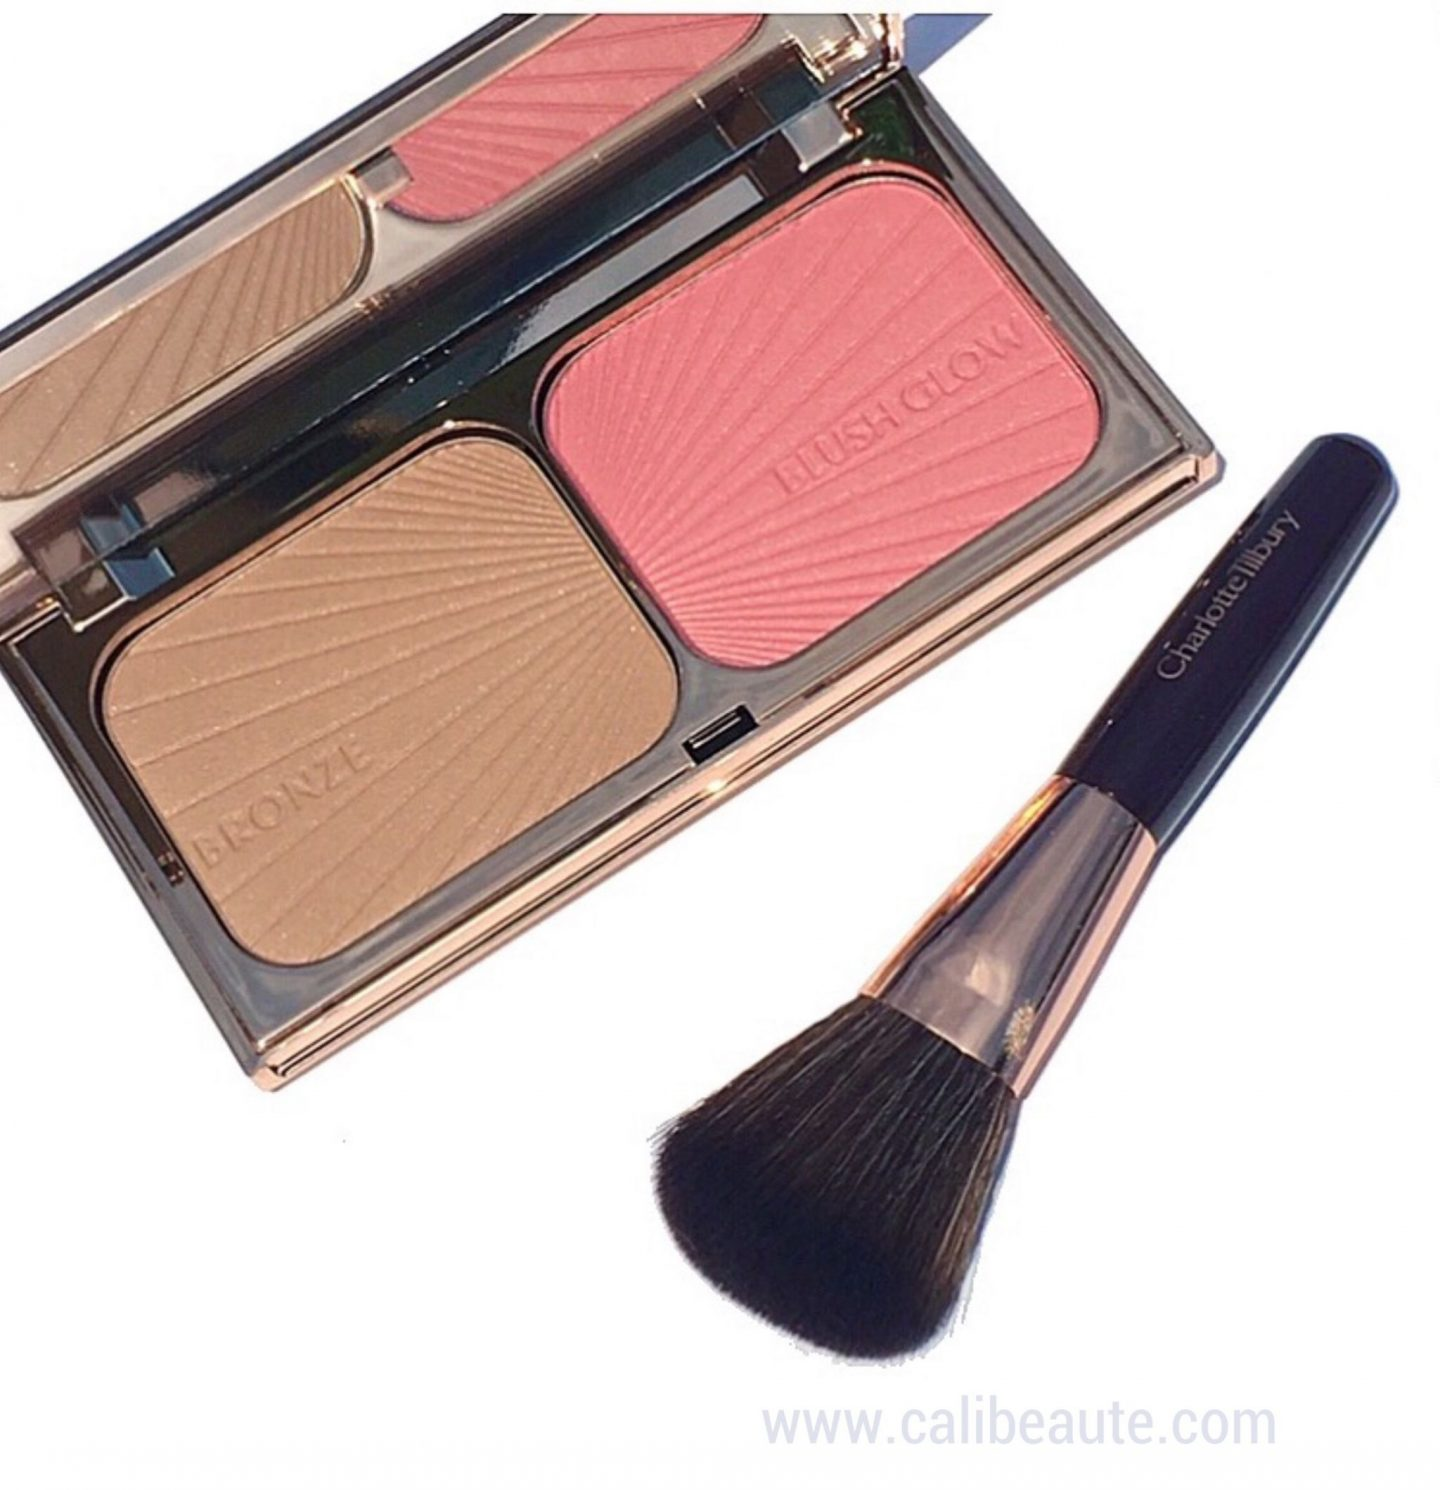 Charlotte Tilbury Bronze Blush Glow Nordstrom Anniversary swatches |www.calibeaute.com